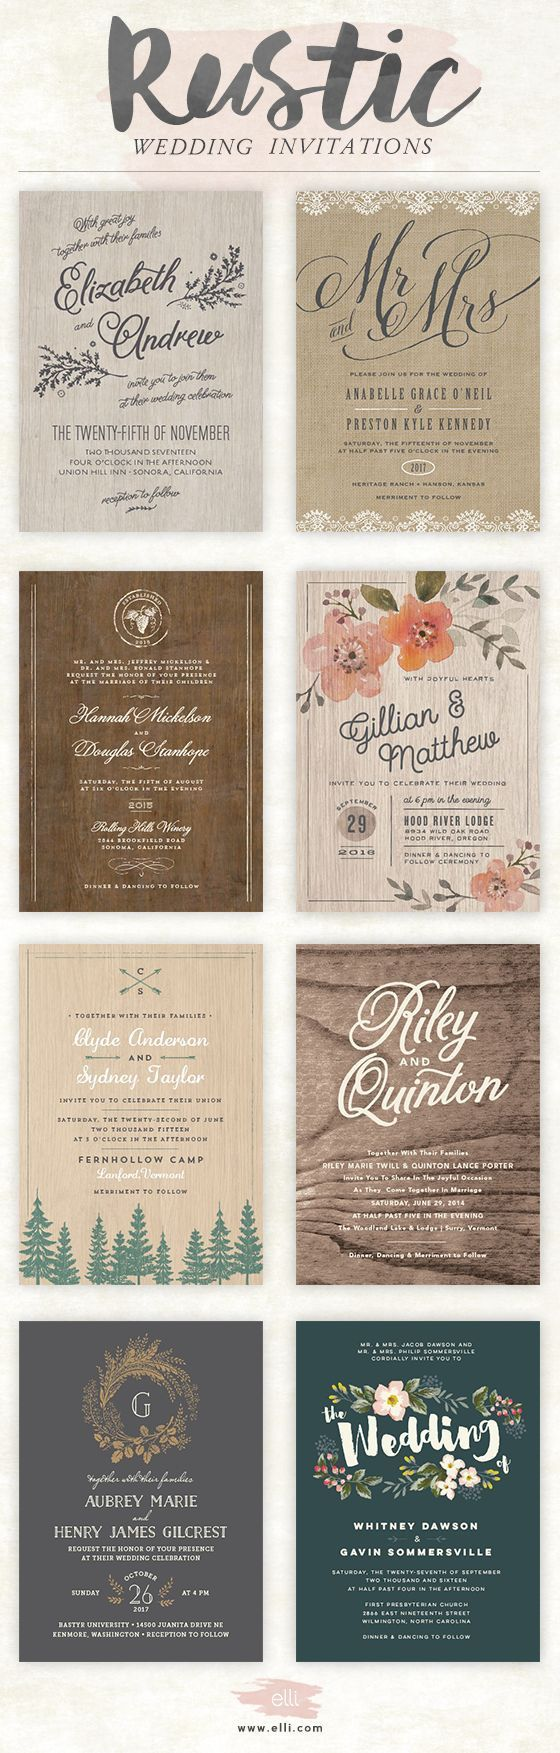 navy blue and kelly green wedding invitations%0A Rustic wedding invitations    Bella Collina Weddings